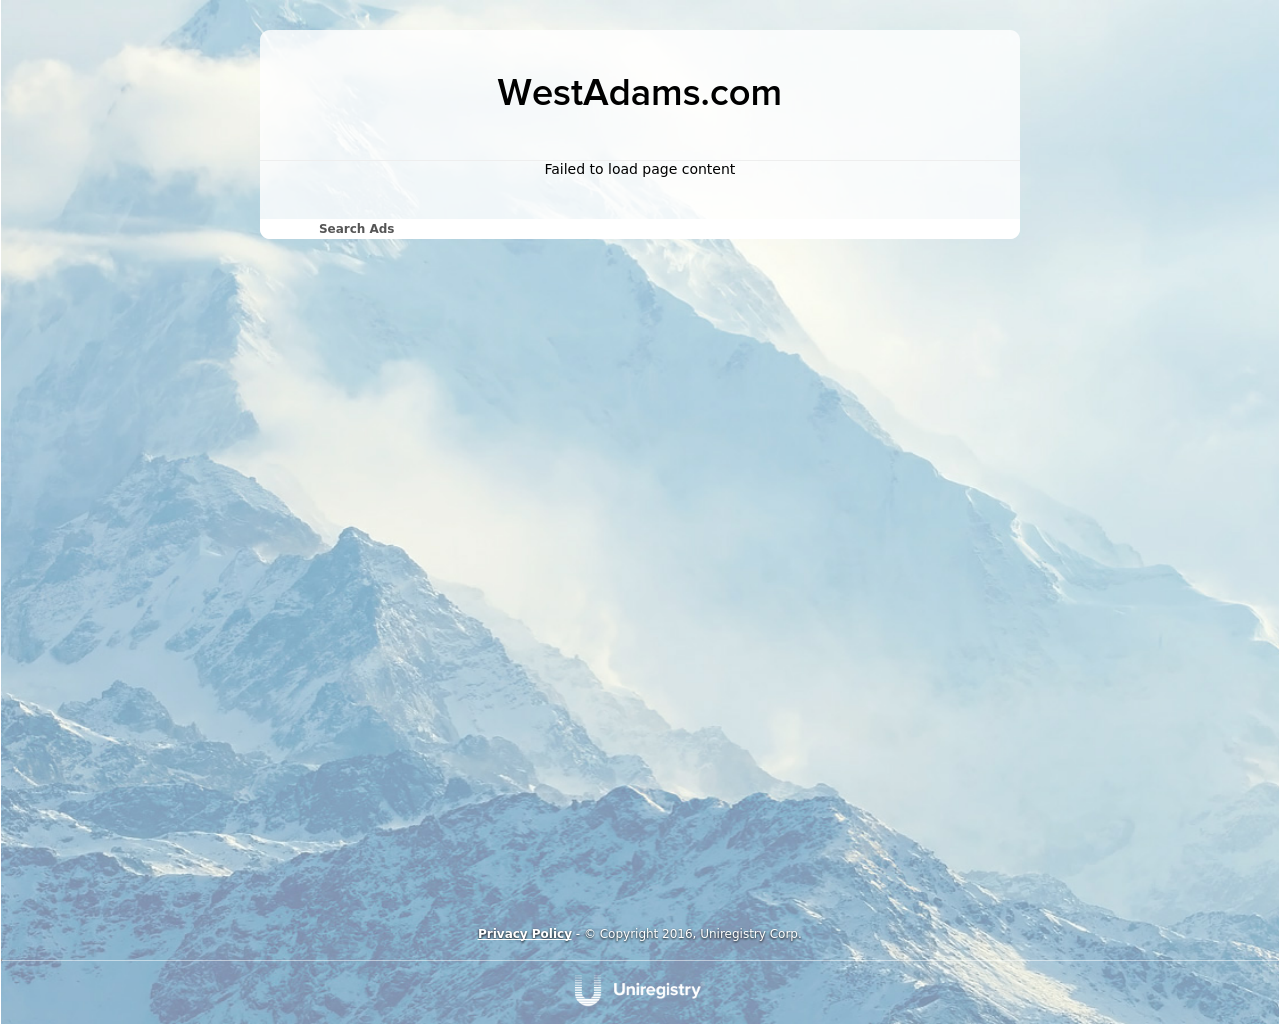 WestAdams.com-Advertising-Reviews-Pricing